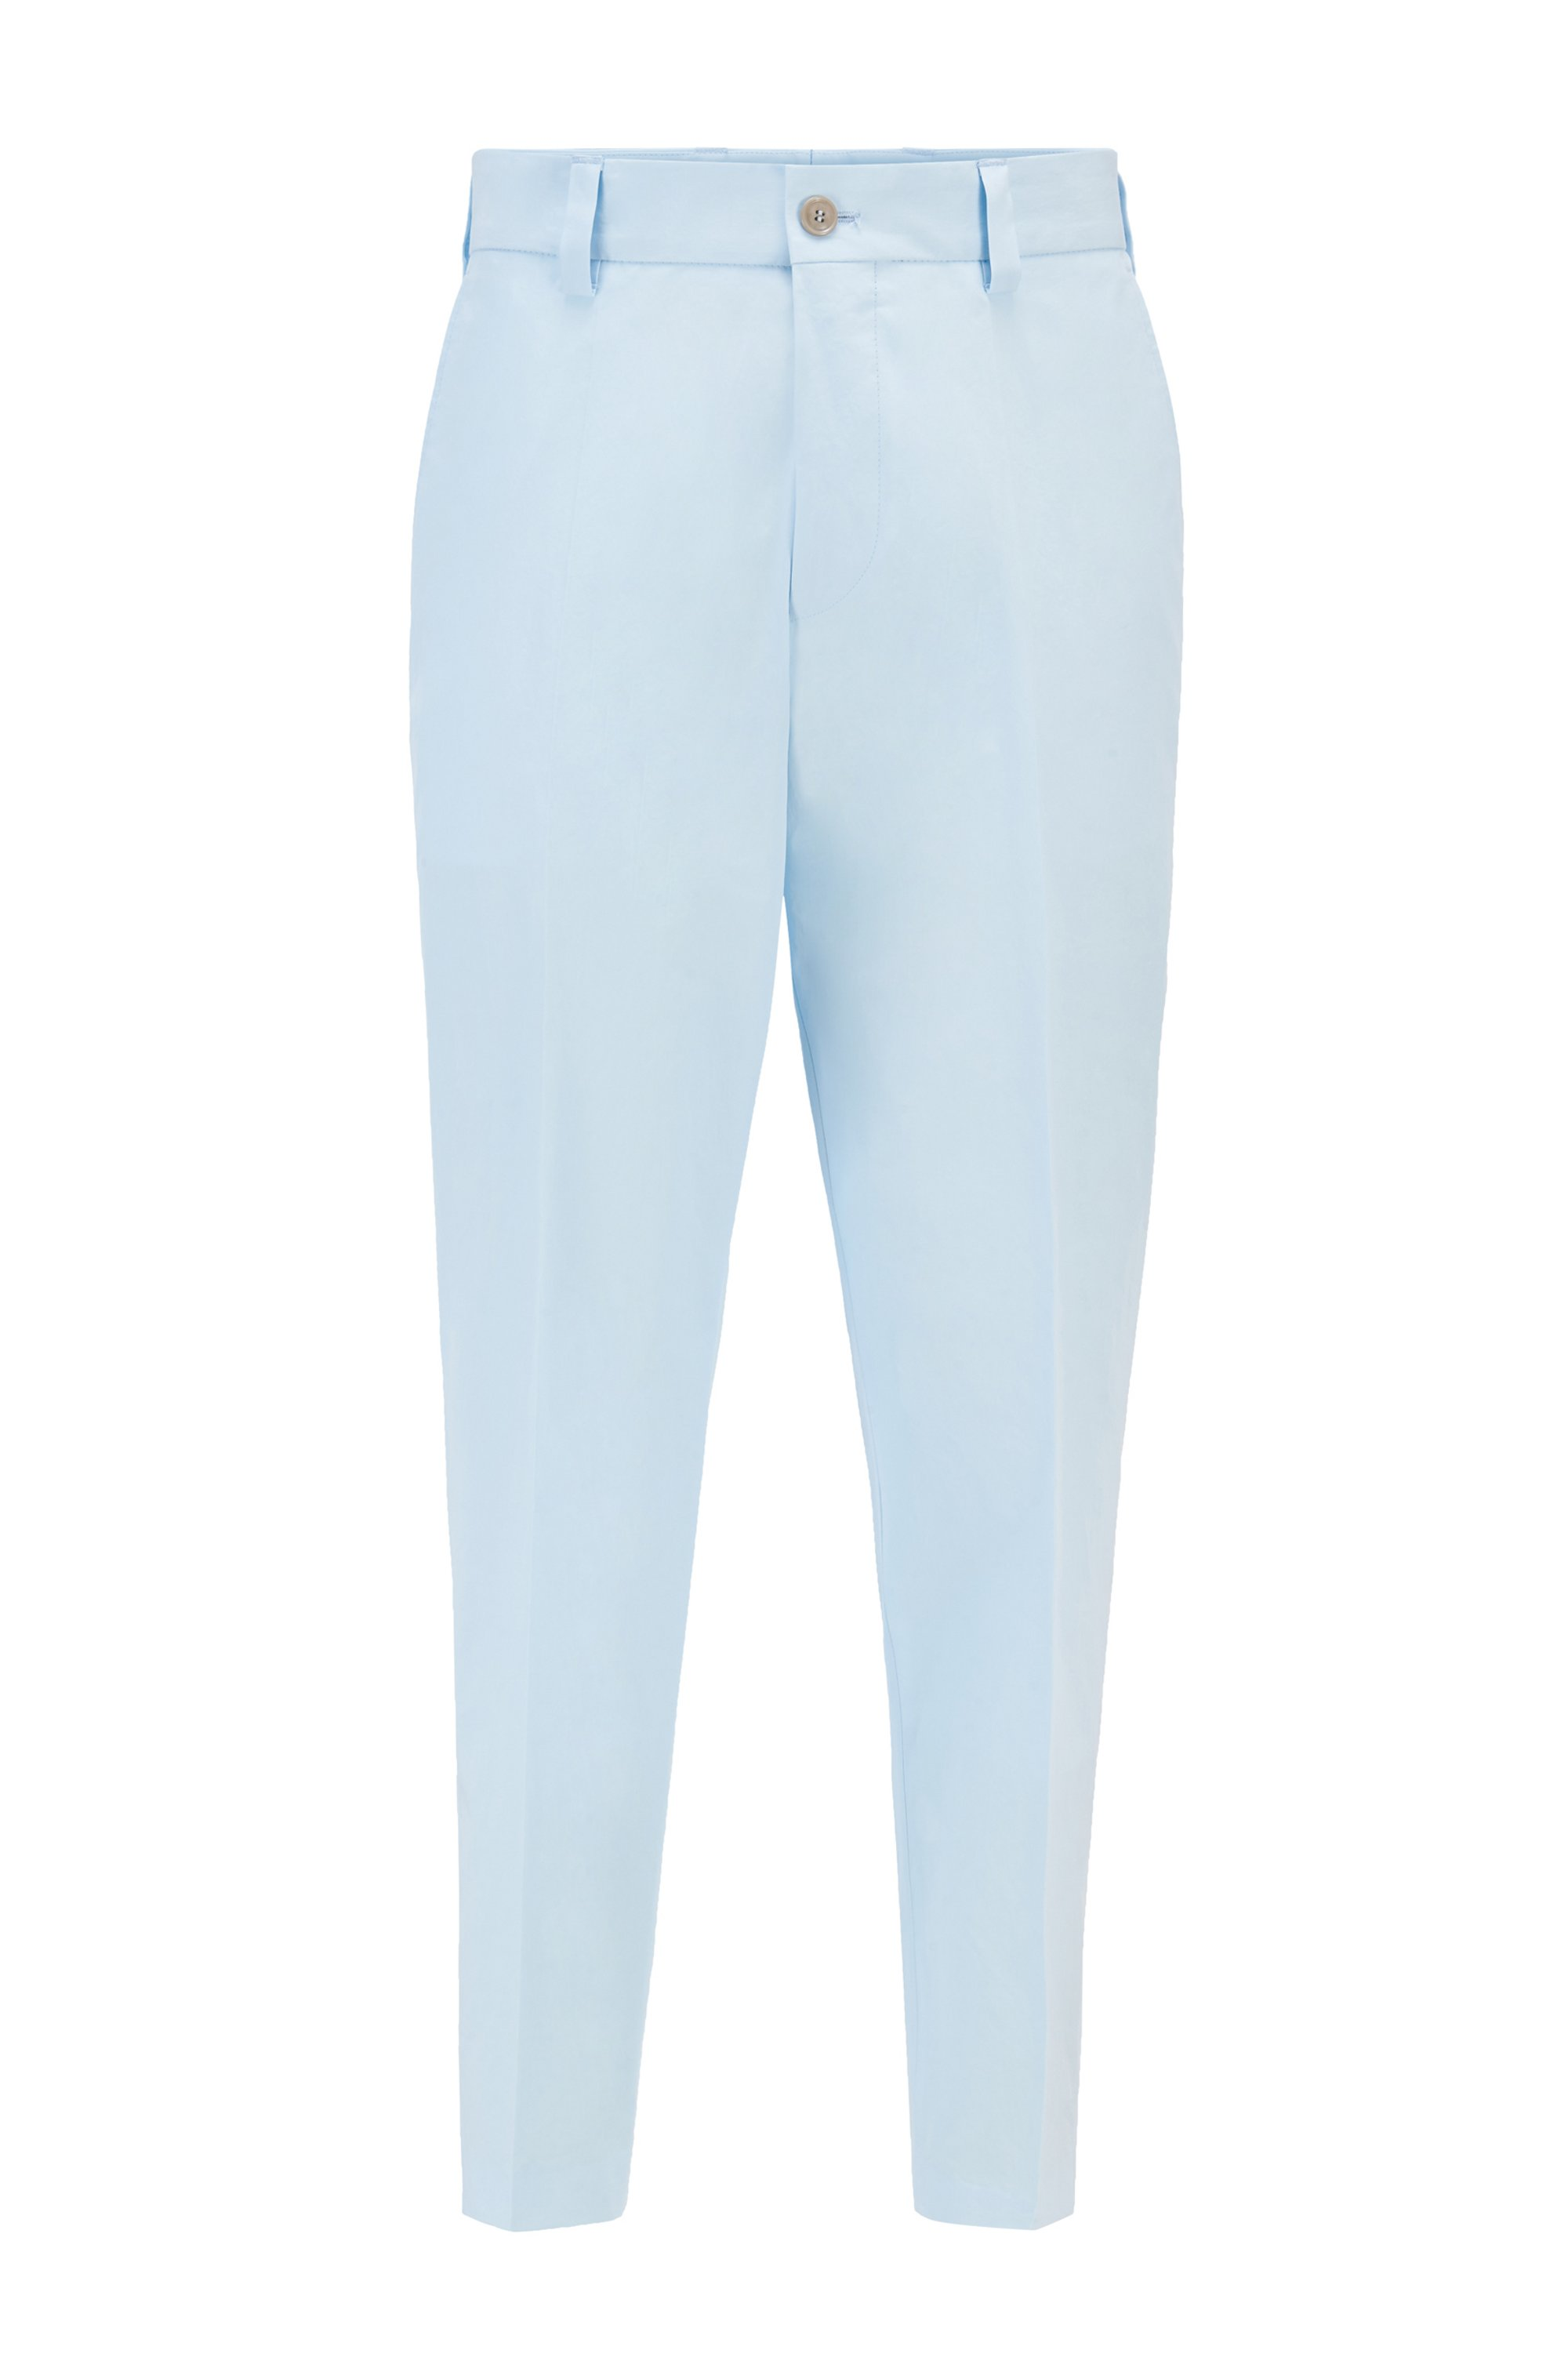 Relaxed-Fit Hose aus Stretch-Baumwolle in Cropped-Länge, Hellblau